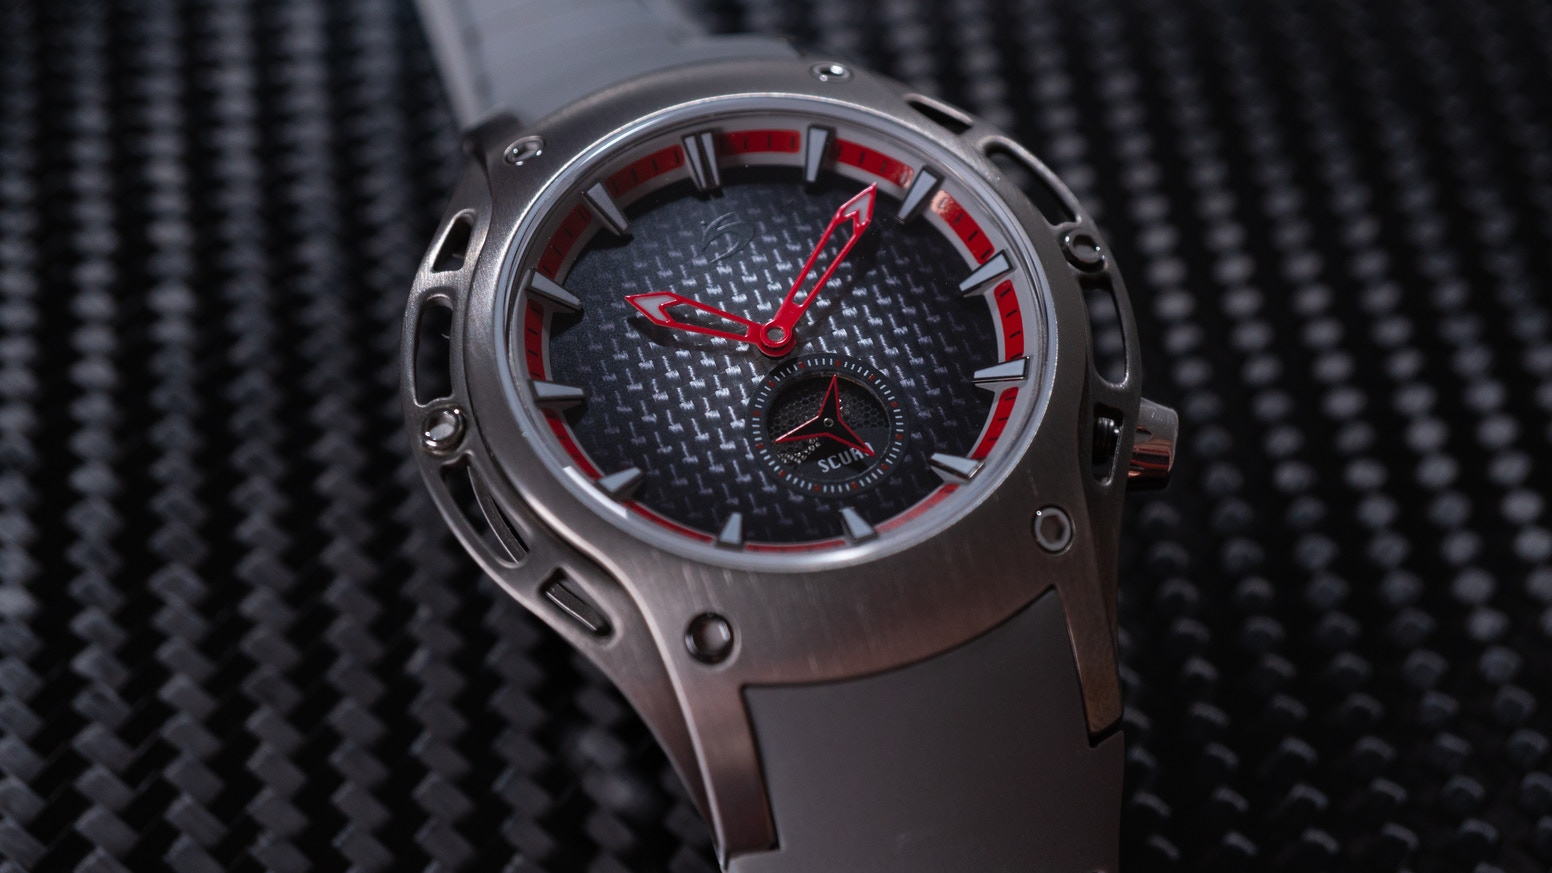 A uniquely styled, race cars inspired concept paired with great everyday wearability at an extremely affordable price.